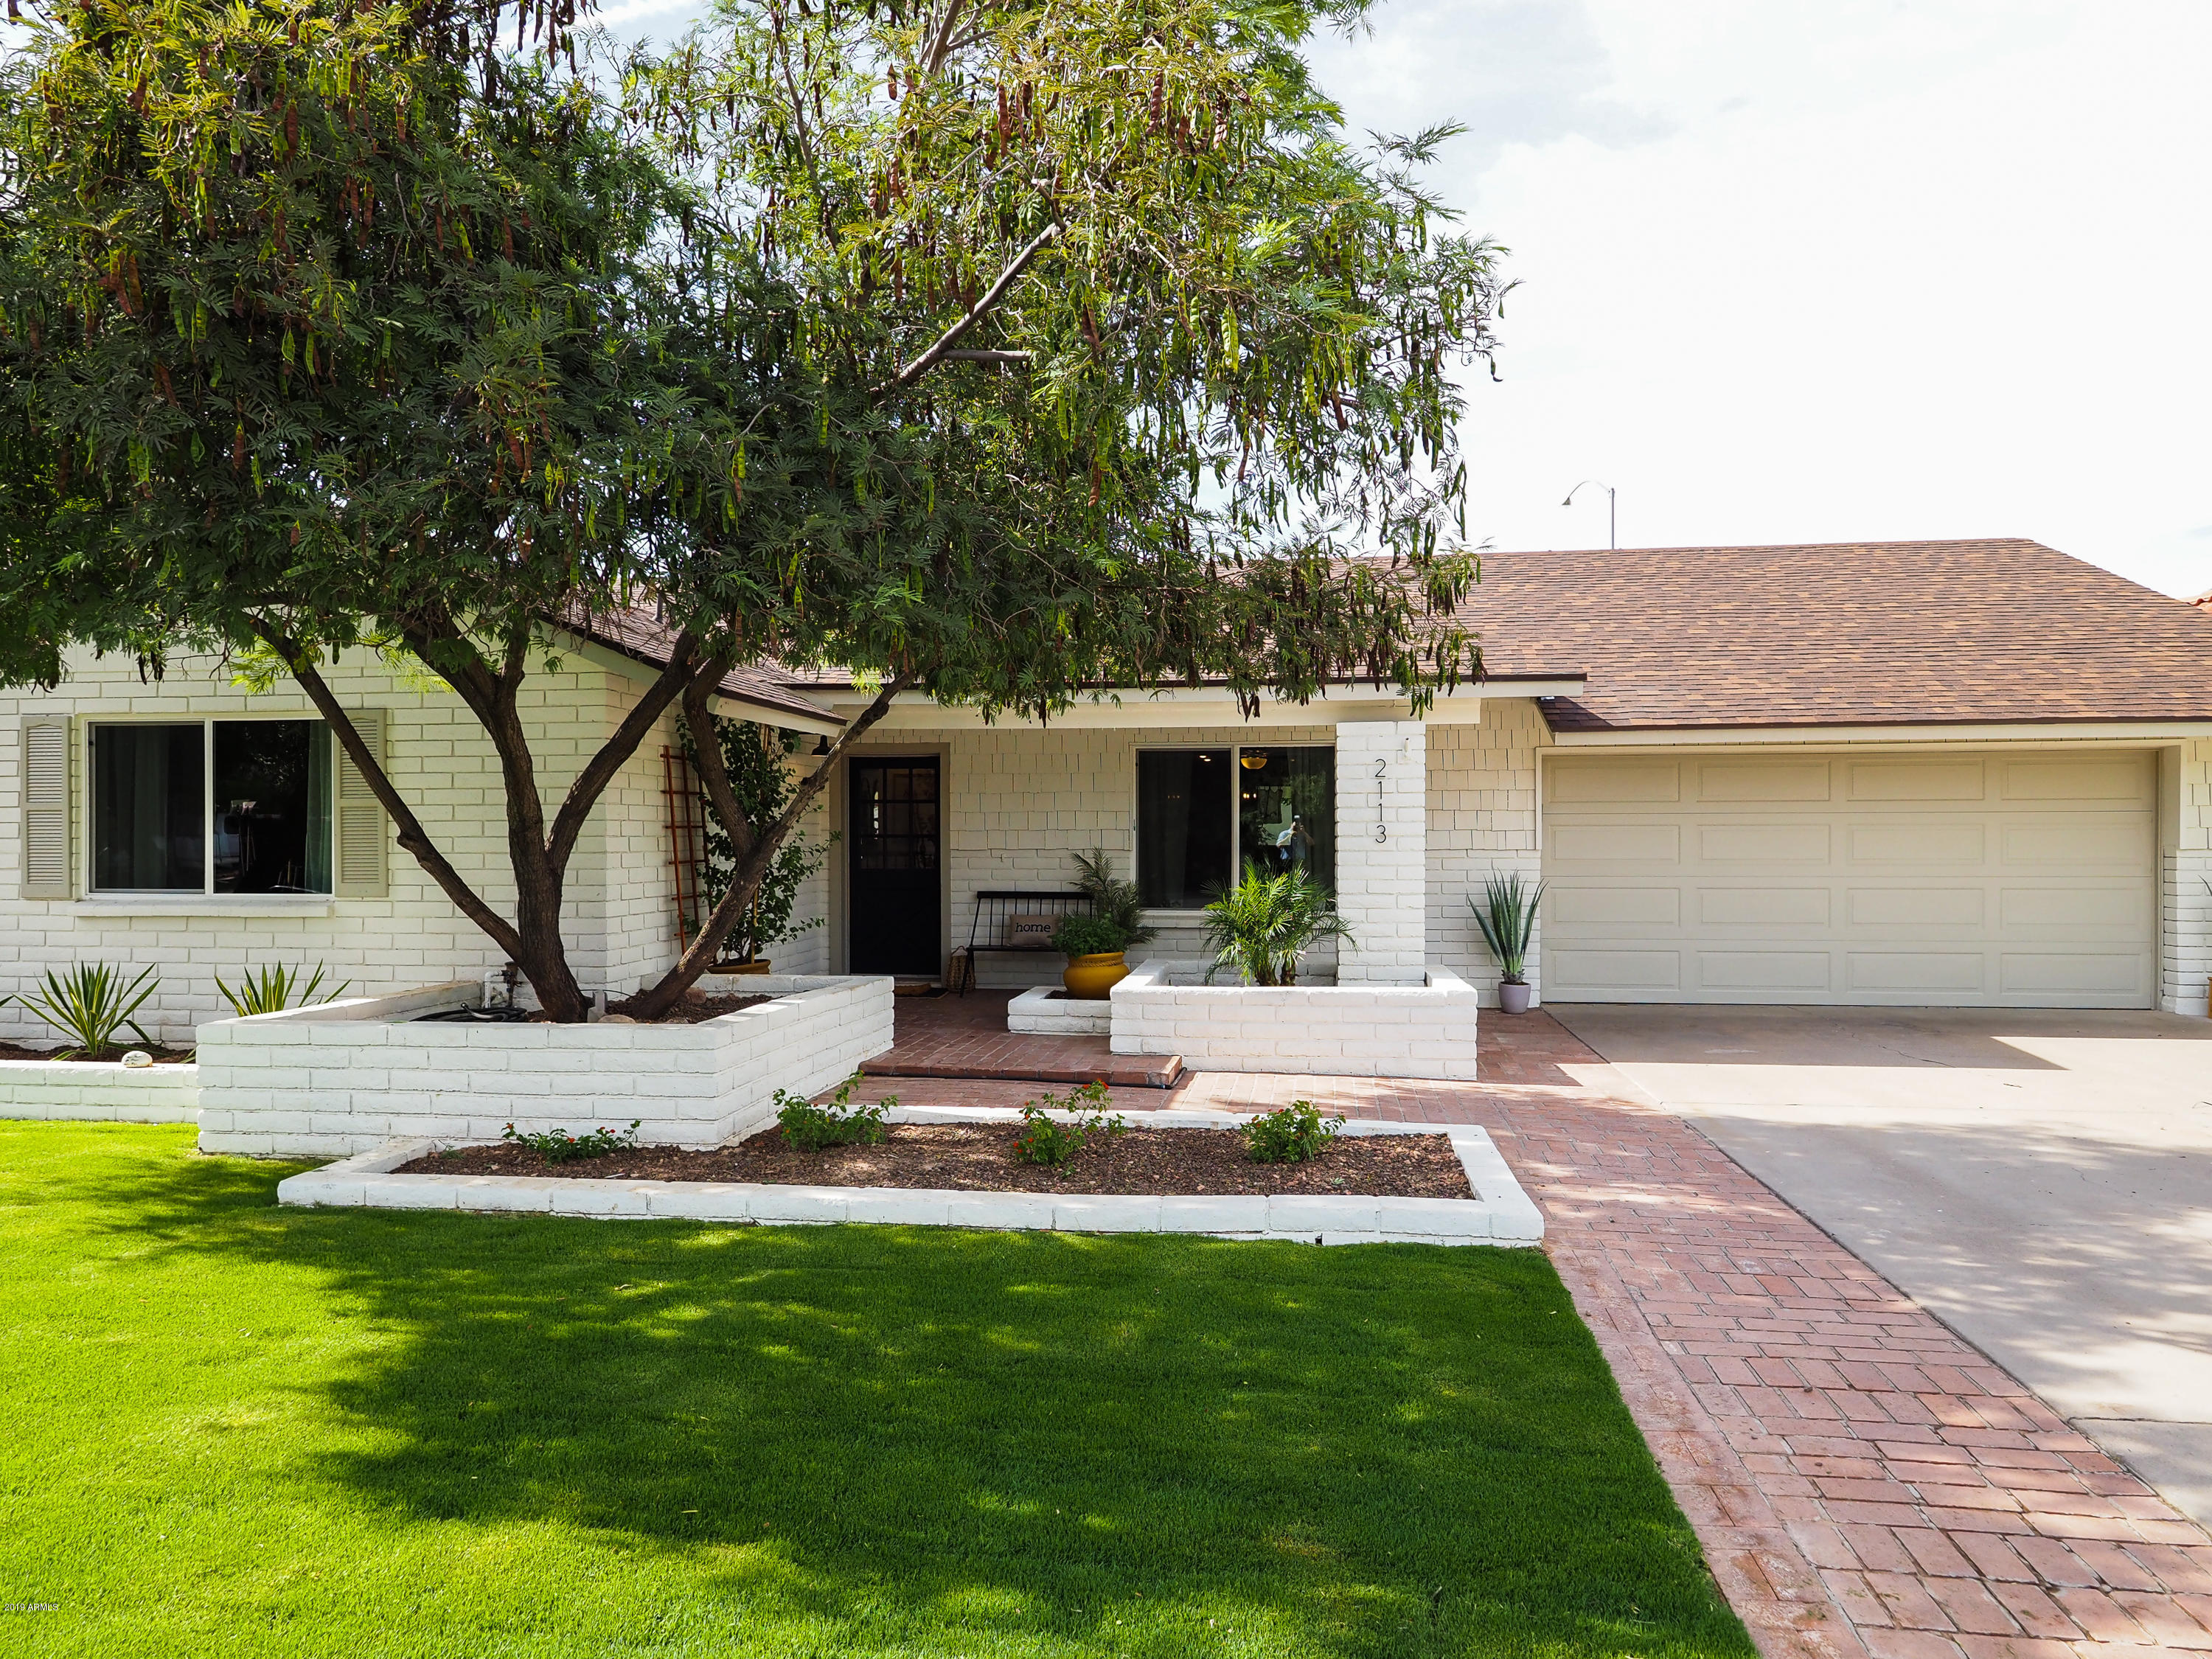 Photo of 2113 E KNOLL Circle, Mesa, AZ 85213